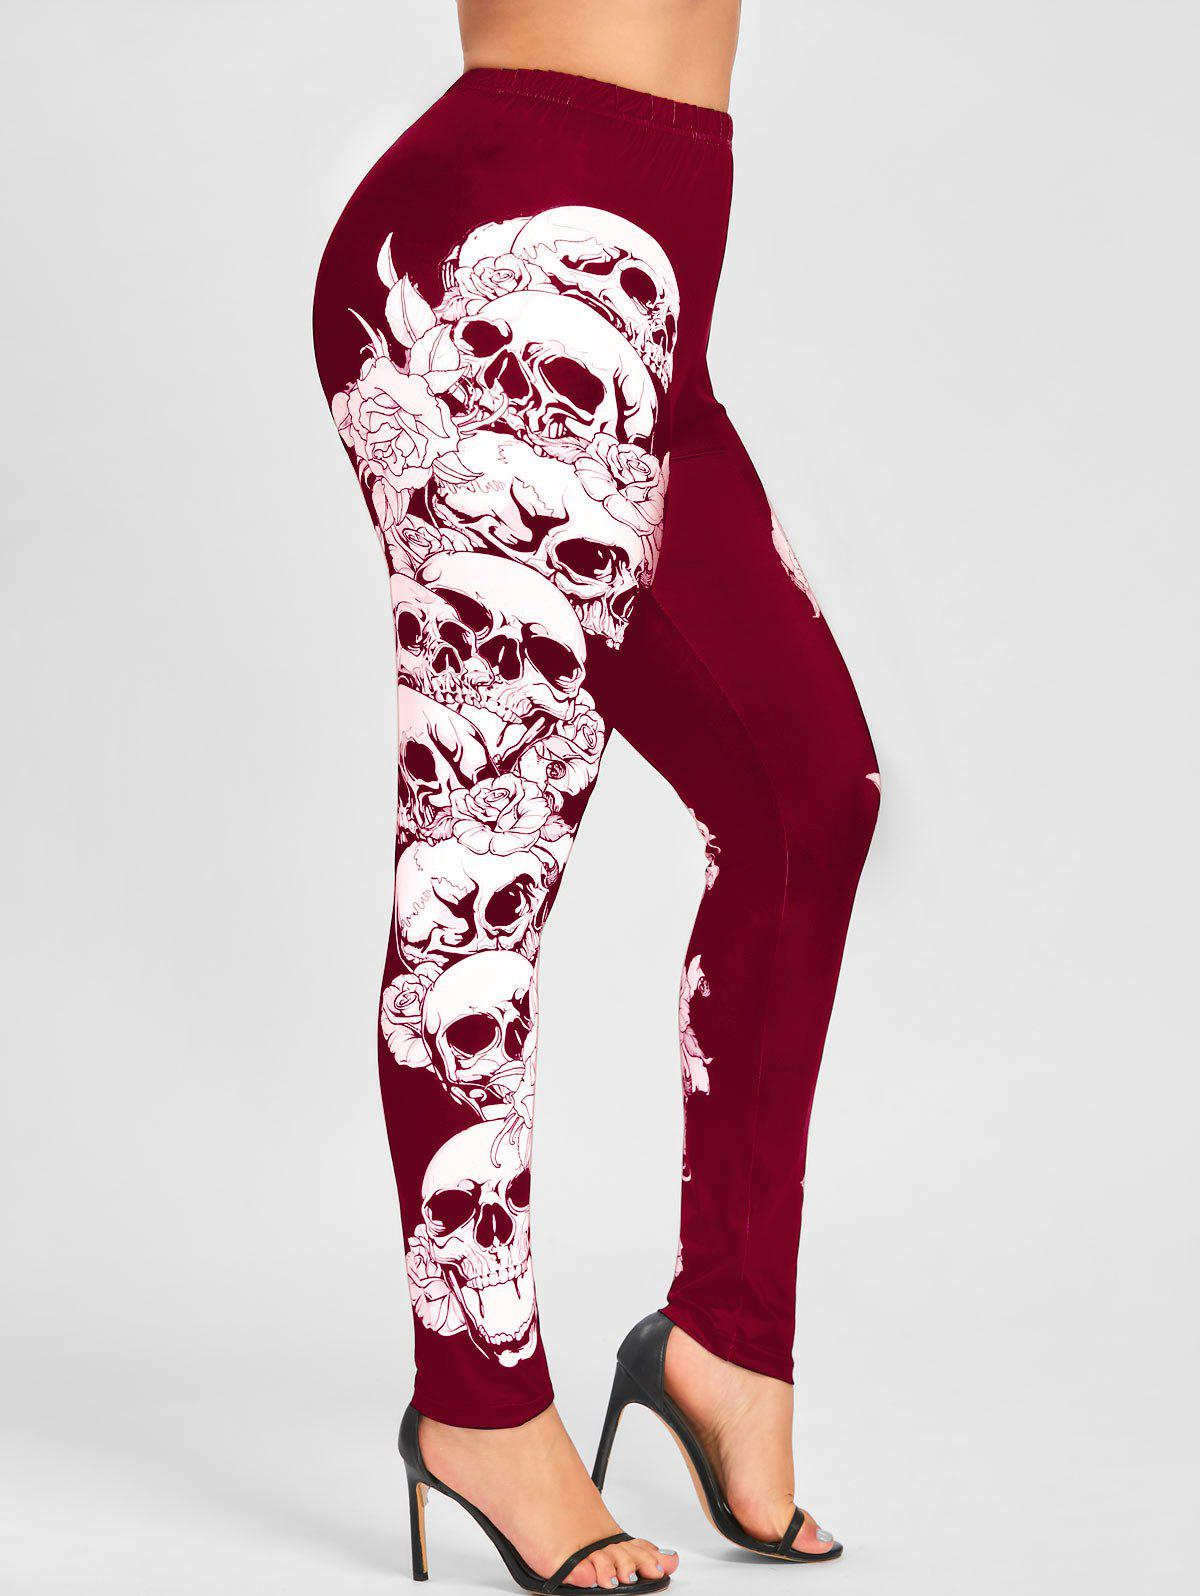 Halloween Plus Size Skulls Monochrome LeggingsWOMEN<br><br>Size: 2XL; Color: RED; Style: Casual; Length: Normal; Material: Polyester; Fit Type: Skinny; Waist Type: Mid; Closure Type: Elastic Waist; Pattern Type: Skulls; Pant Style: Pencil Pants; Weight: 0.2400kg; Package Contents: 1 x Leggings;